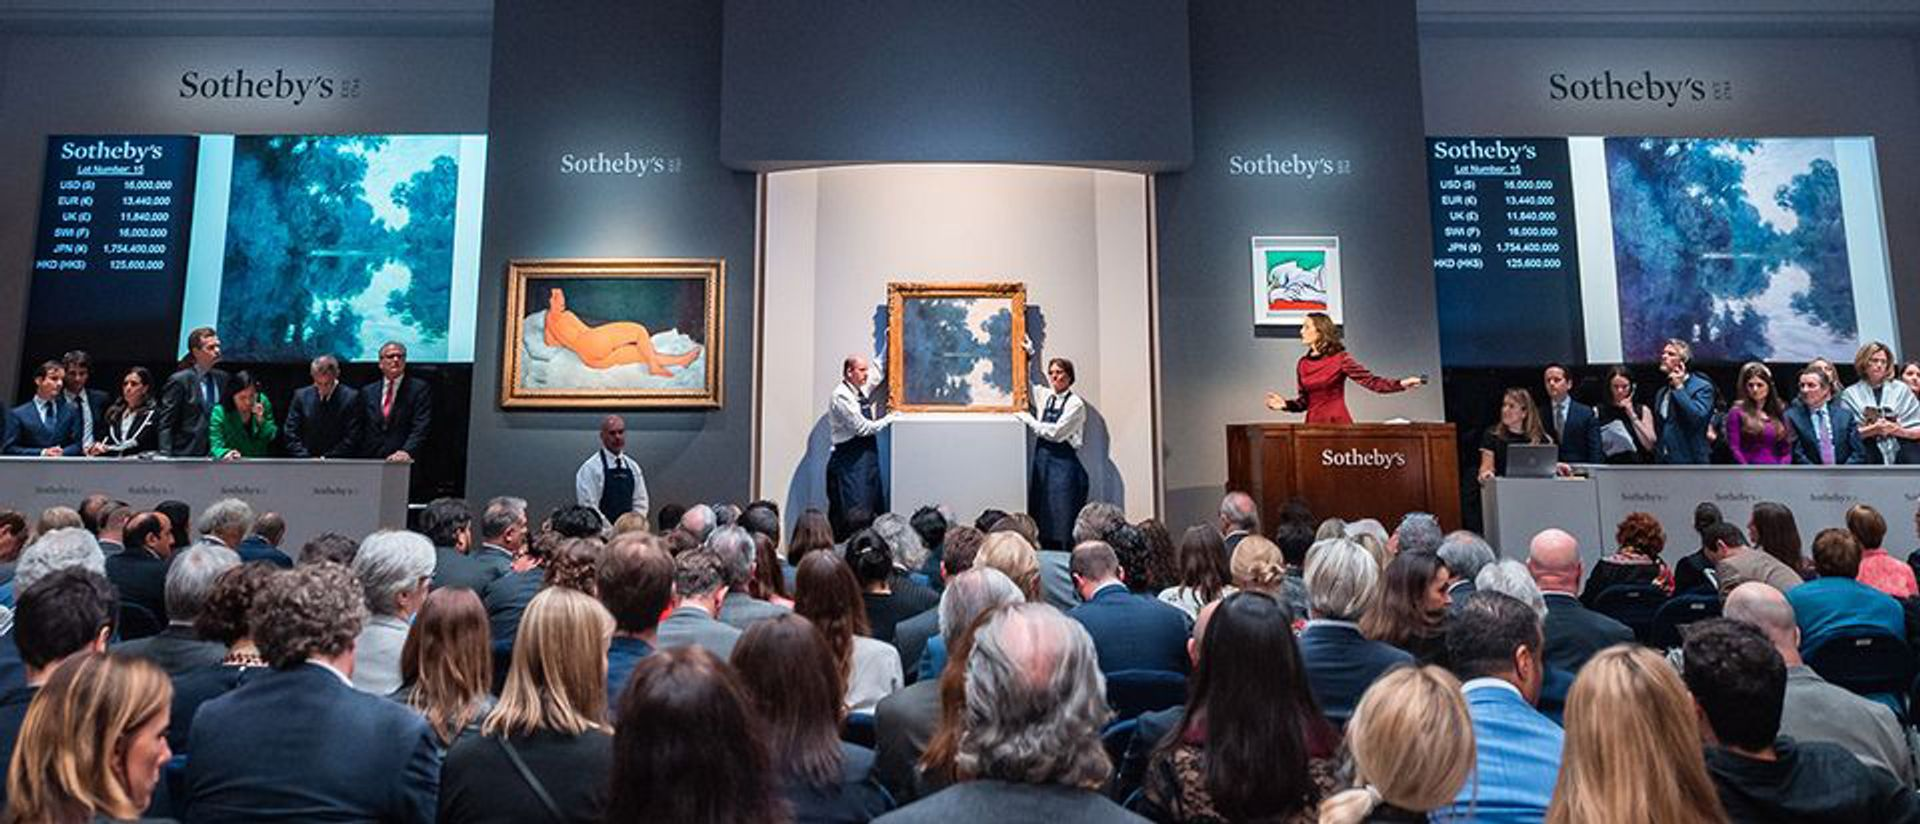 Sotheby's profits were dented by a squeeze on both seller and buyer commission charges, as auction houses forced to cut competitive deals for both consignors and third-party guarantors in order to secure high-value works such as Amedeo Modigliani's Nu couché, which sold in May on its low estimate of $150m to an irrevocable bidder. Courtesy of Sotheby's